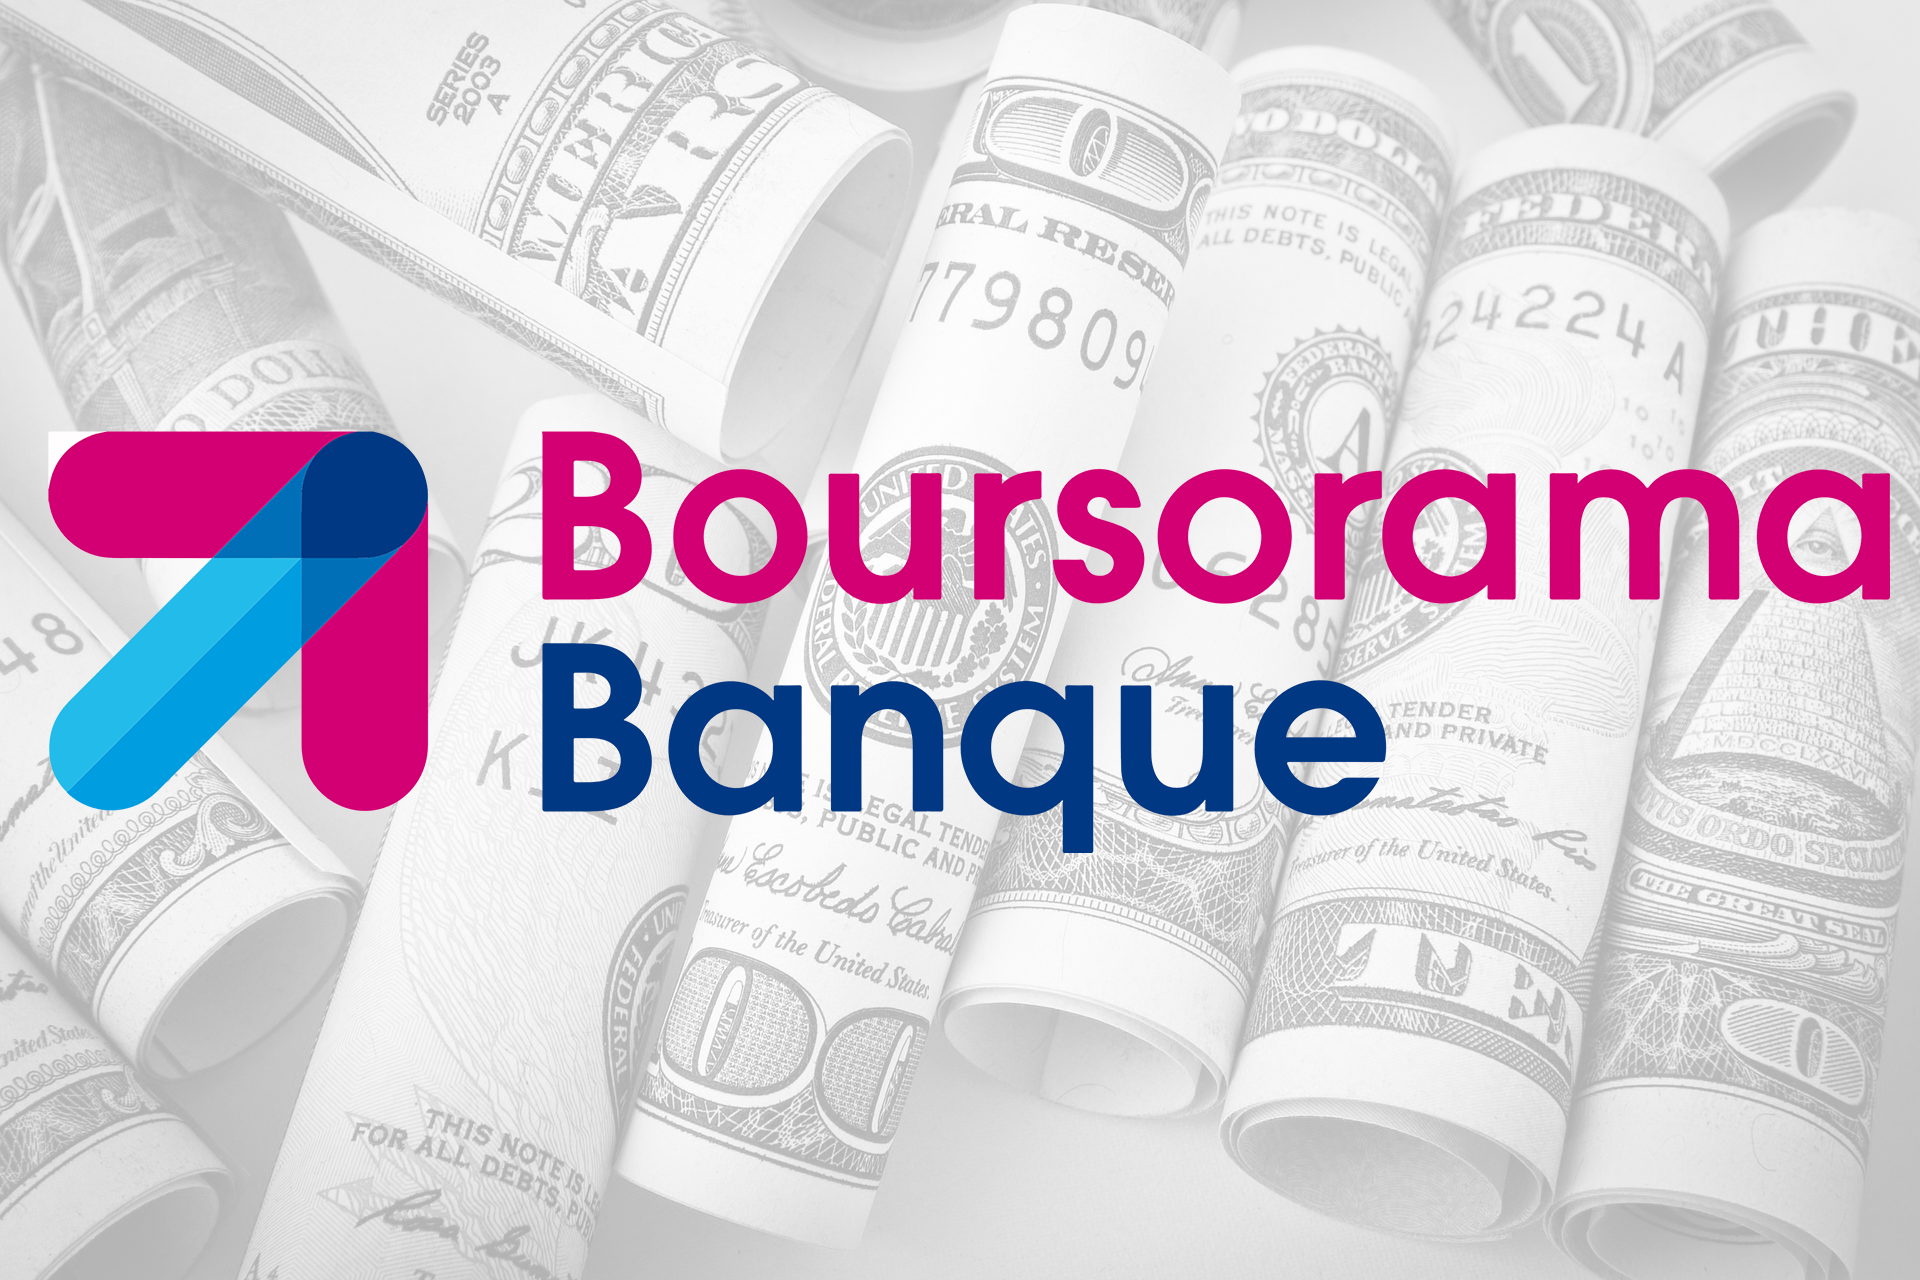 boursorama banque logo-optimisationsetbonsplans